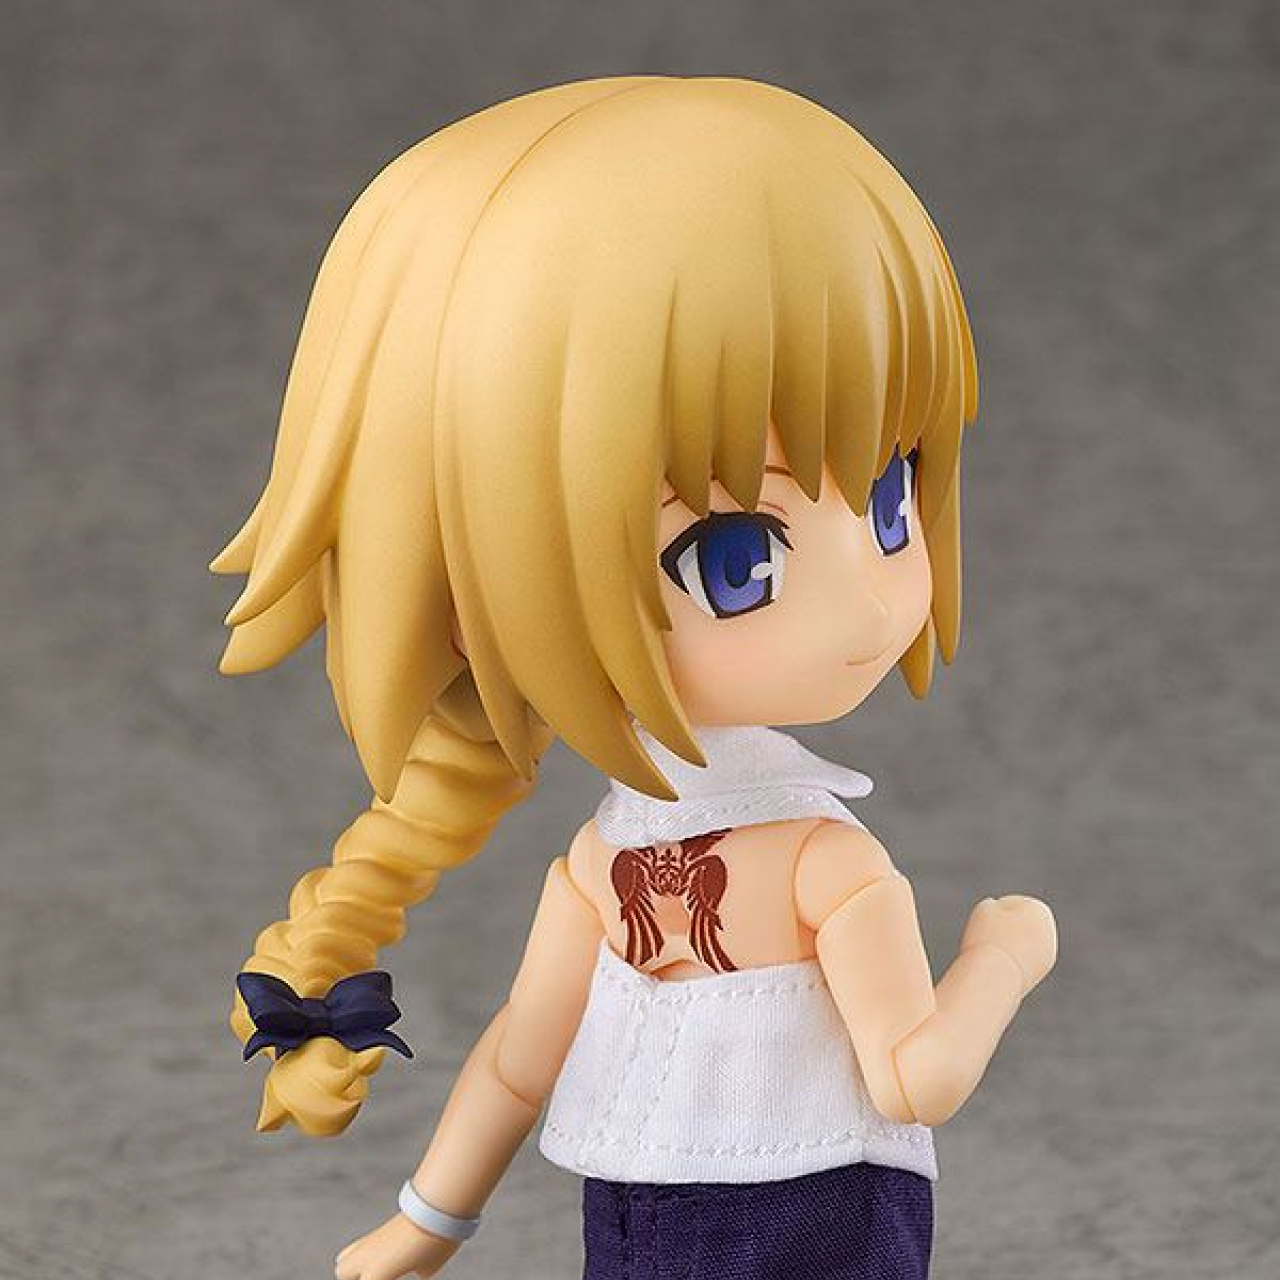 Fate/Apocrypha Nendoroid Doll Action Figure Ruler Casual Ver. 14 cm